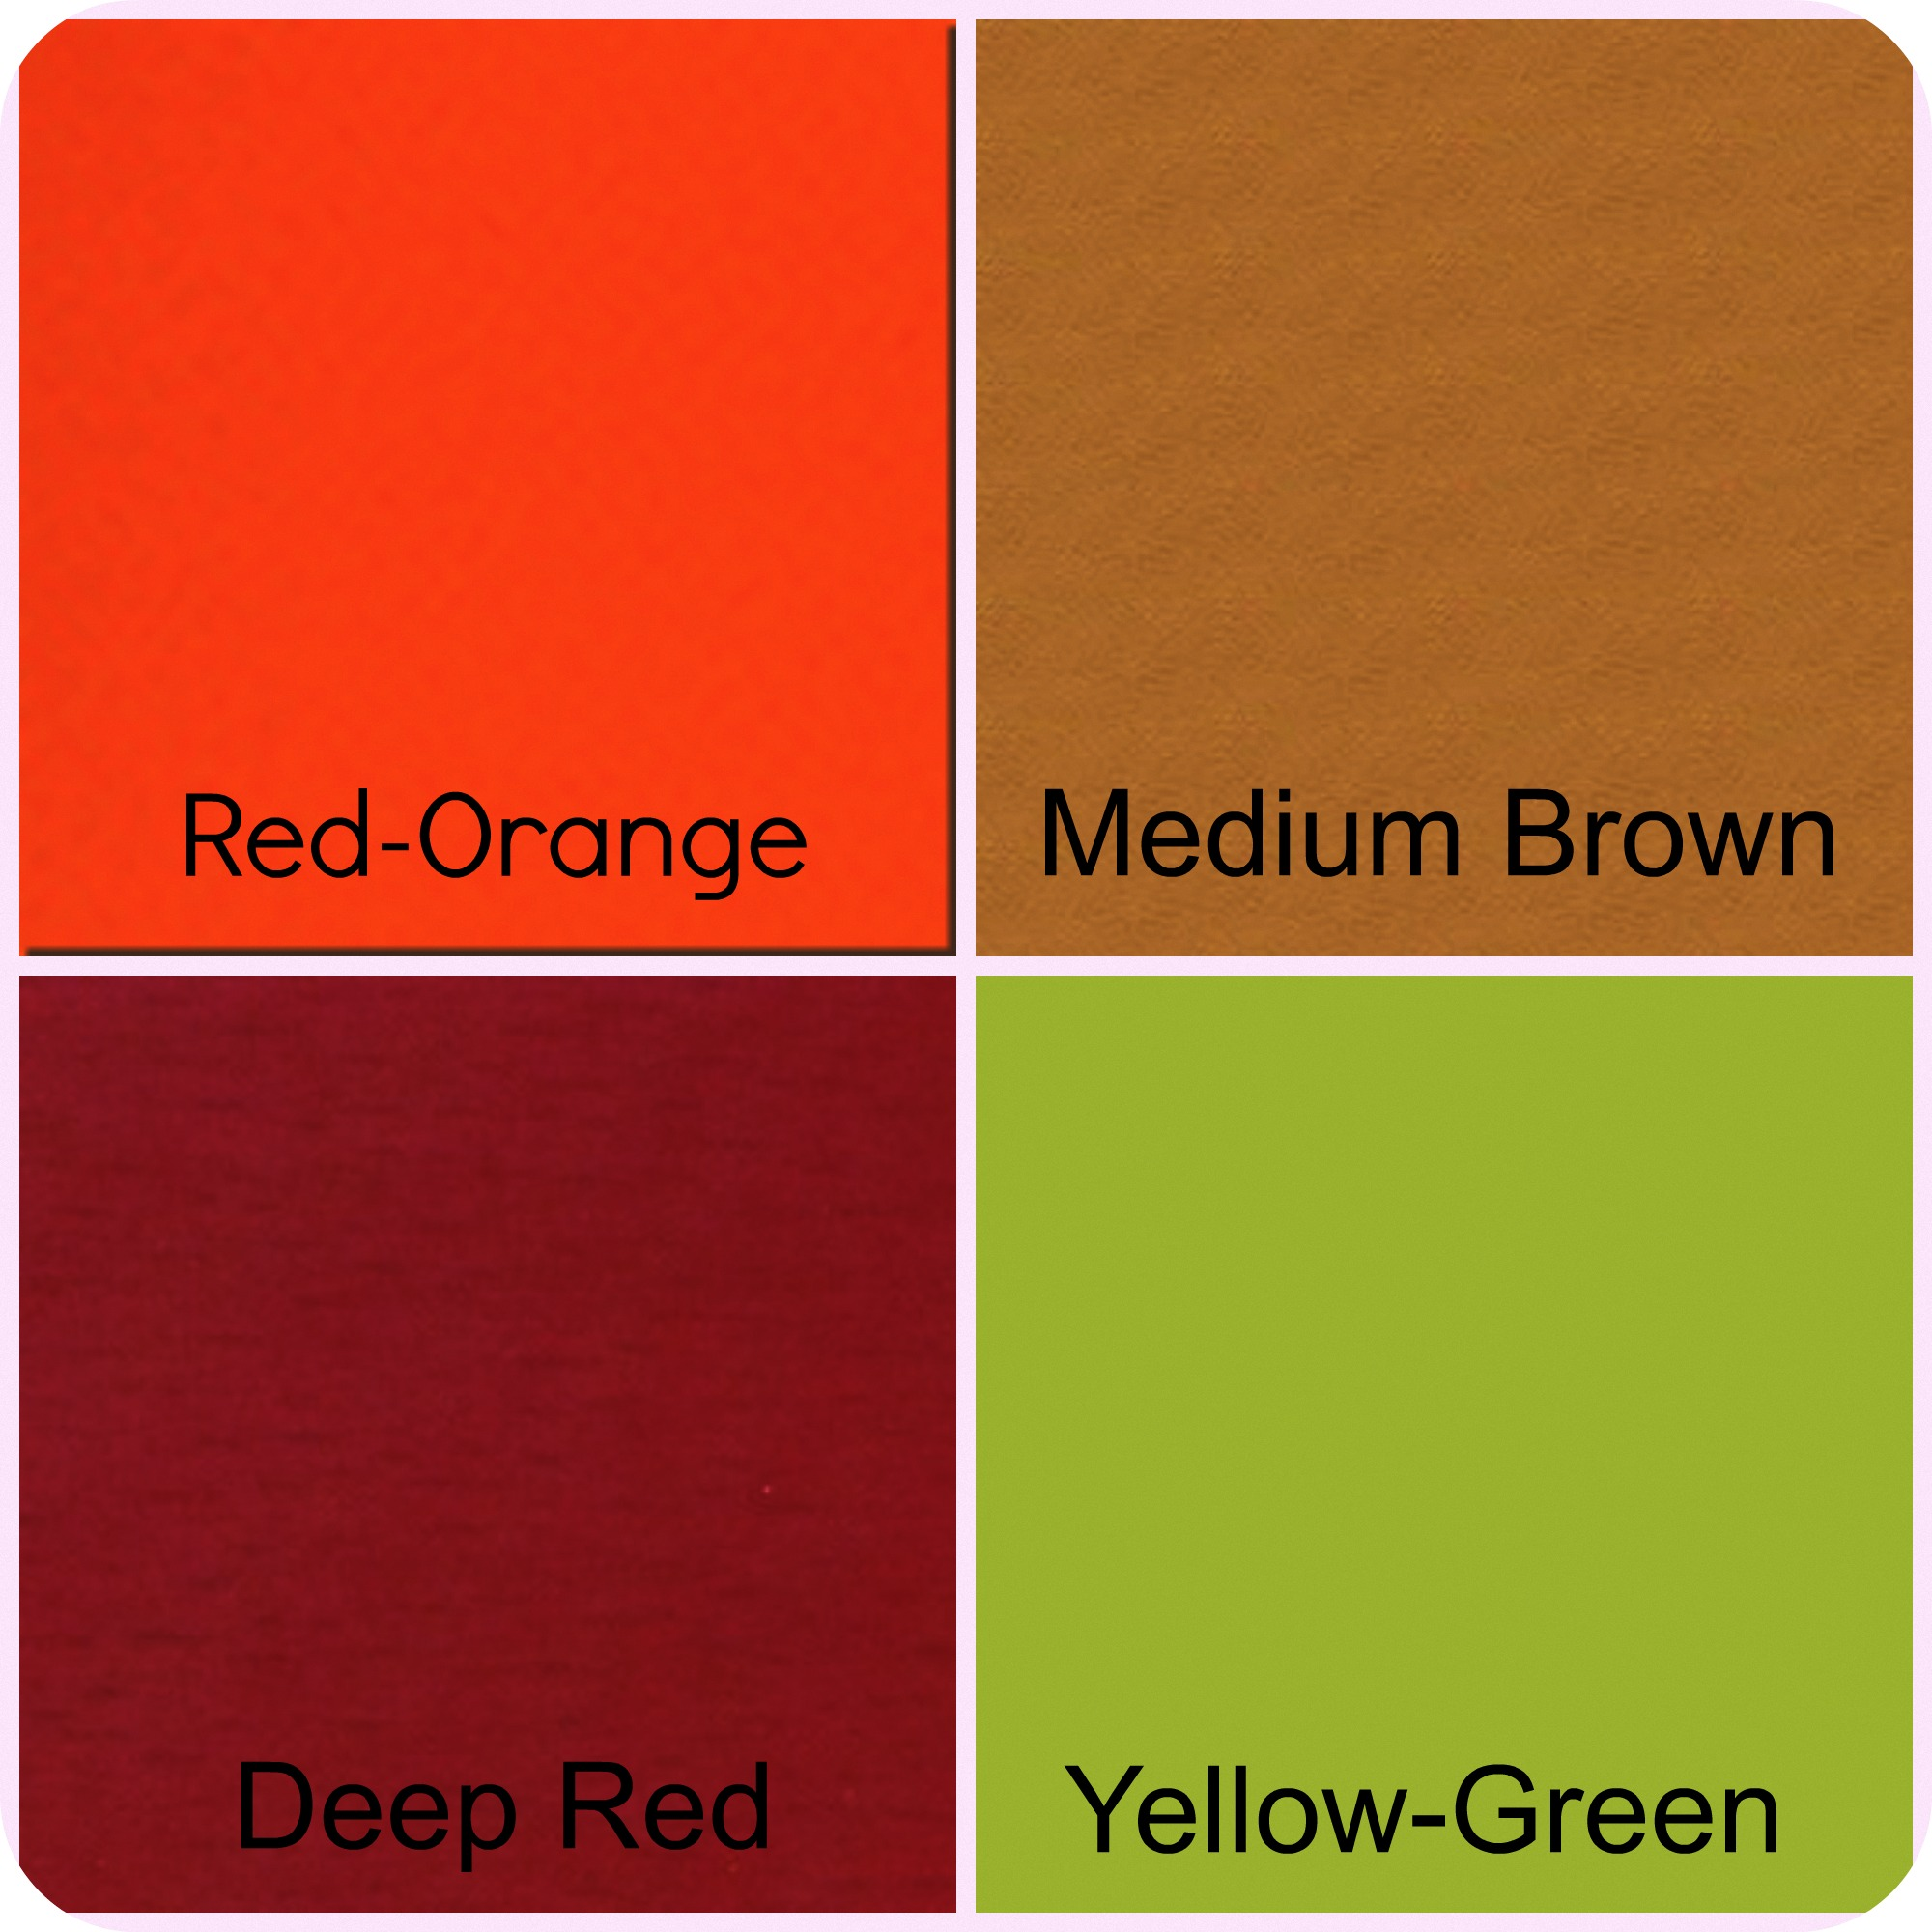 Re Energize With Red Play Up Your Red With. The Second Warm Color Is ORANGE.